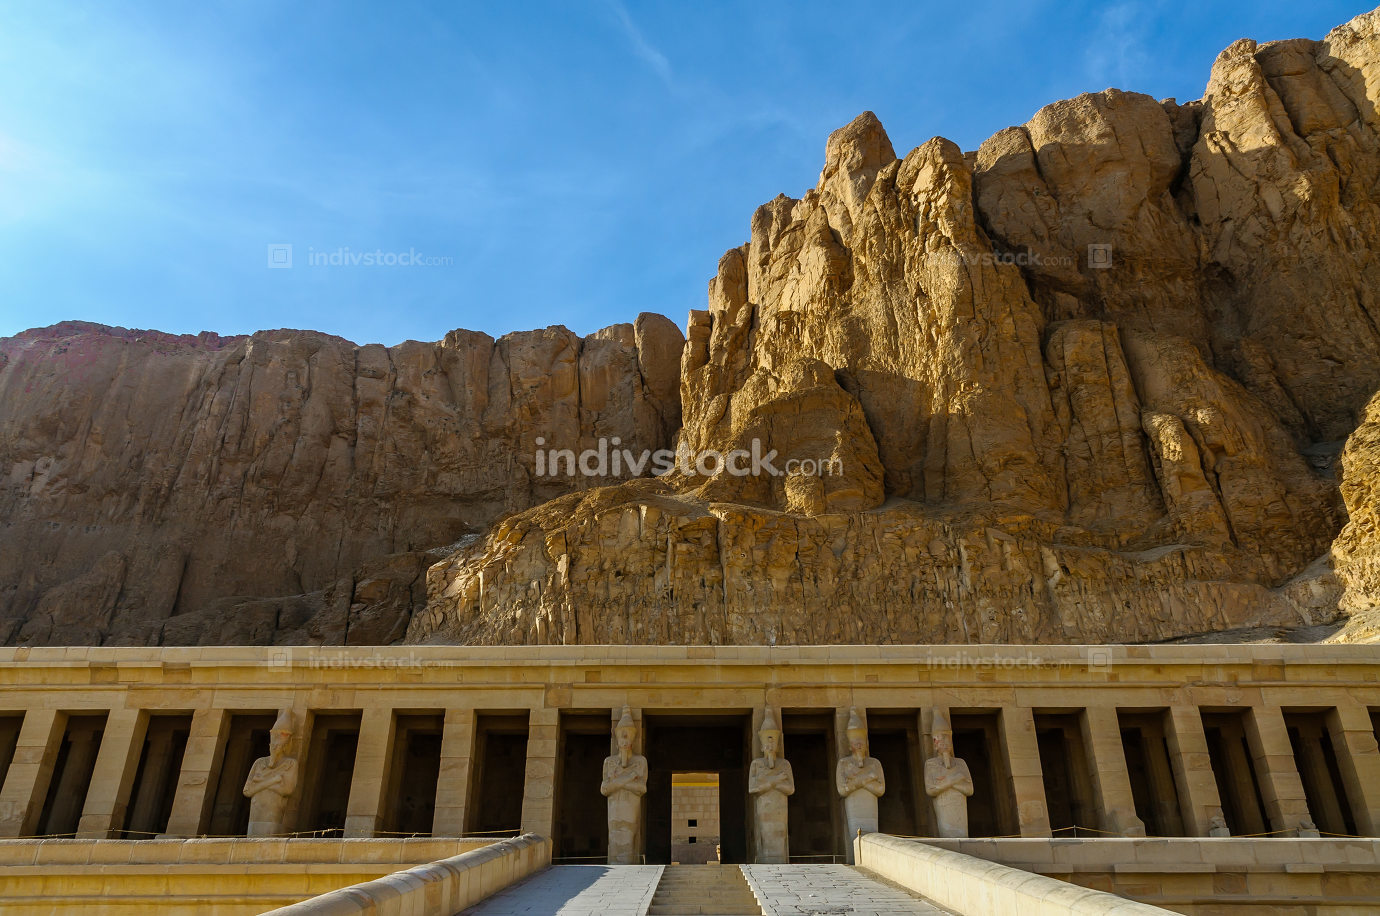 Hatshepsut Temple in the Valley of the Kings